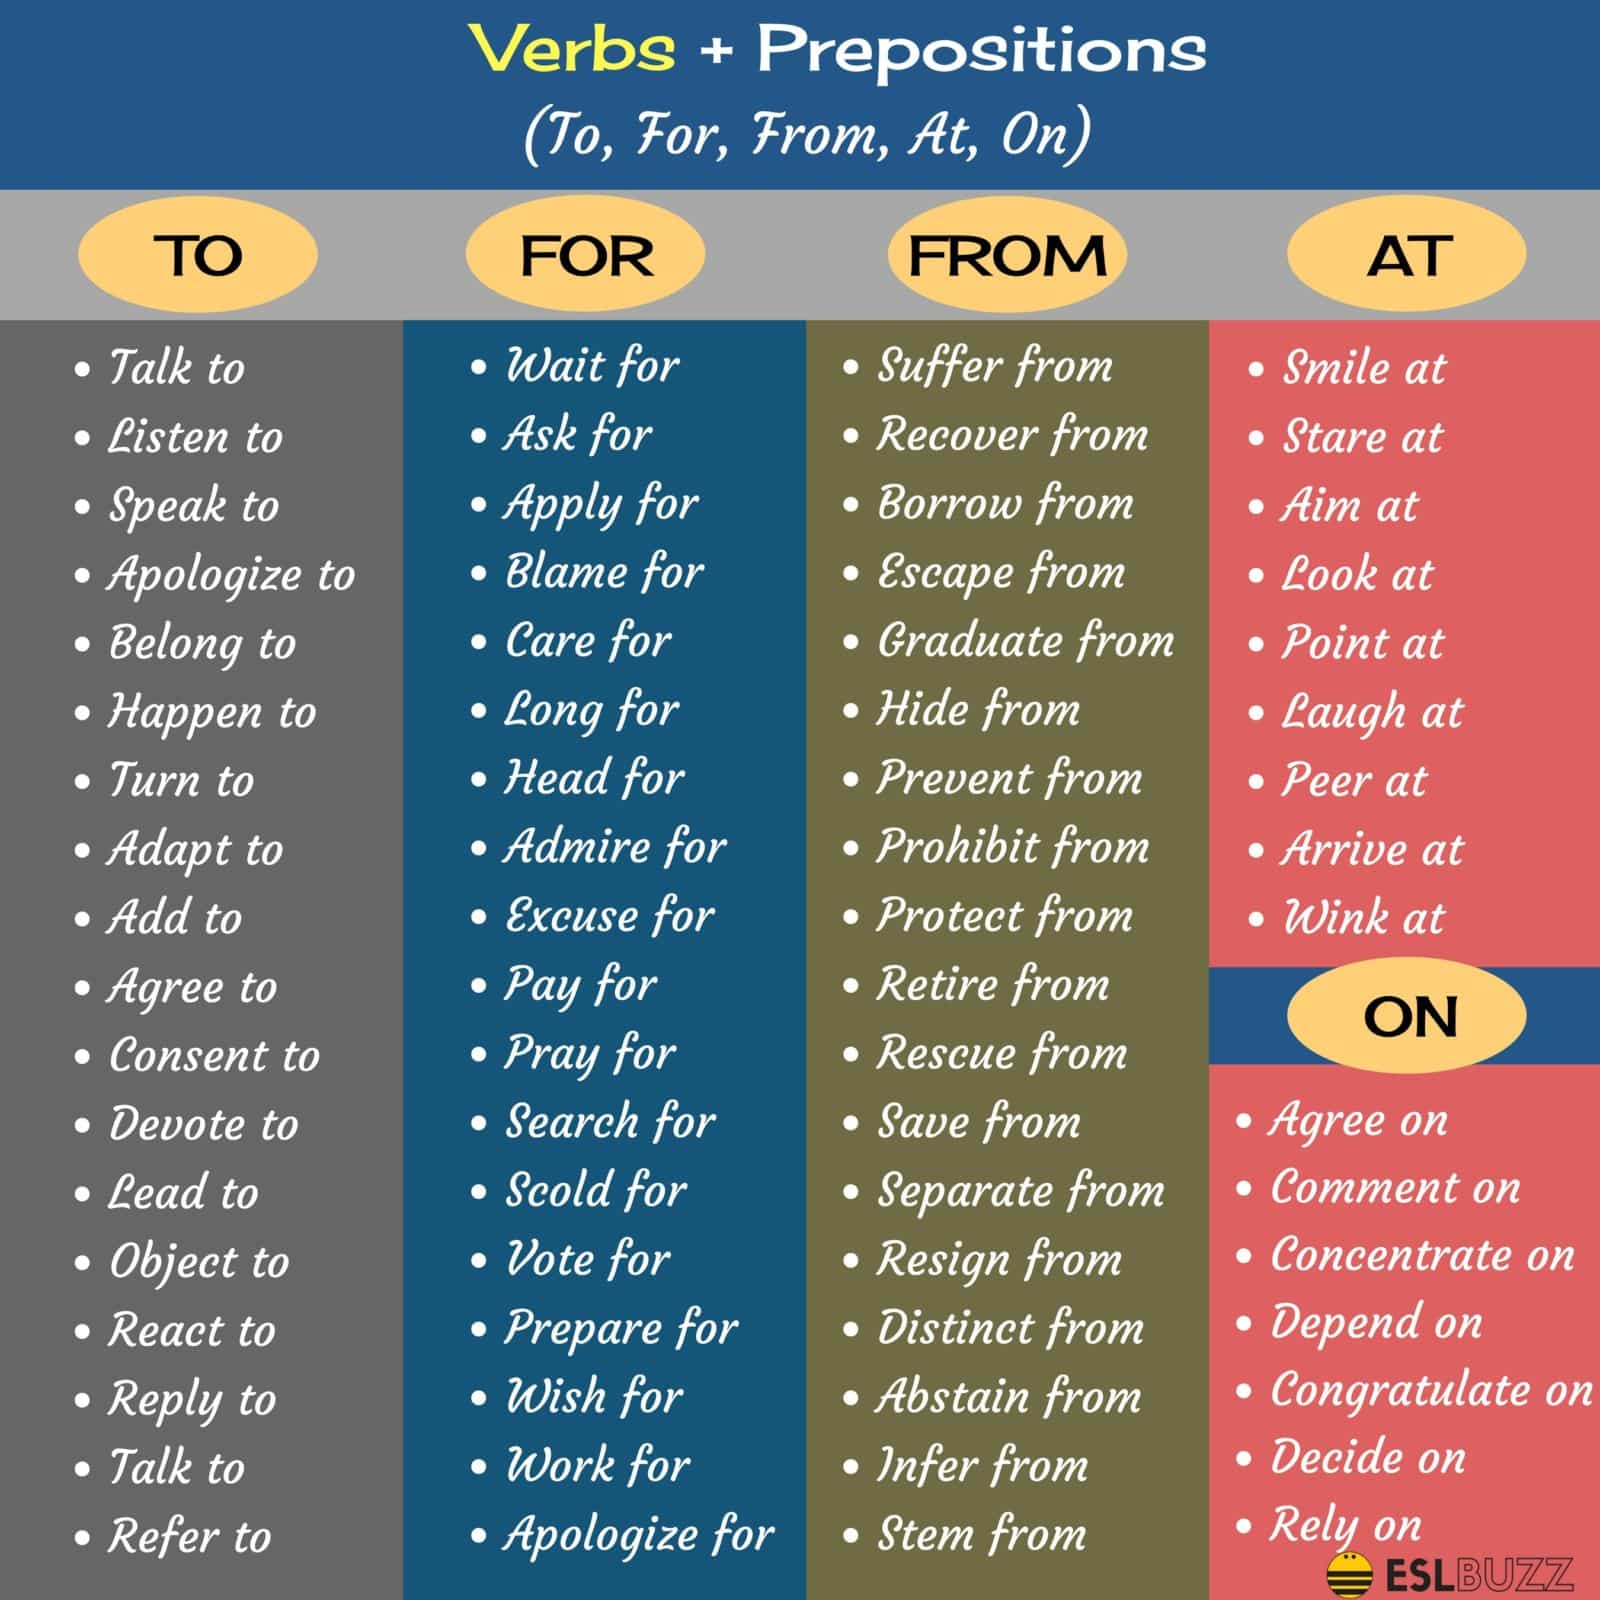 Verb and Preposition Combinations